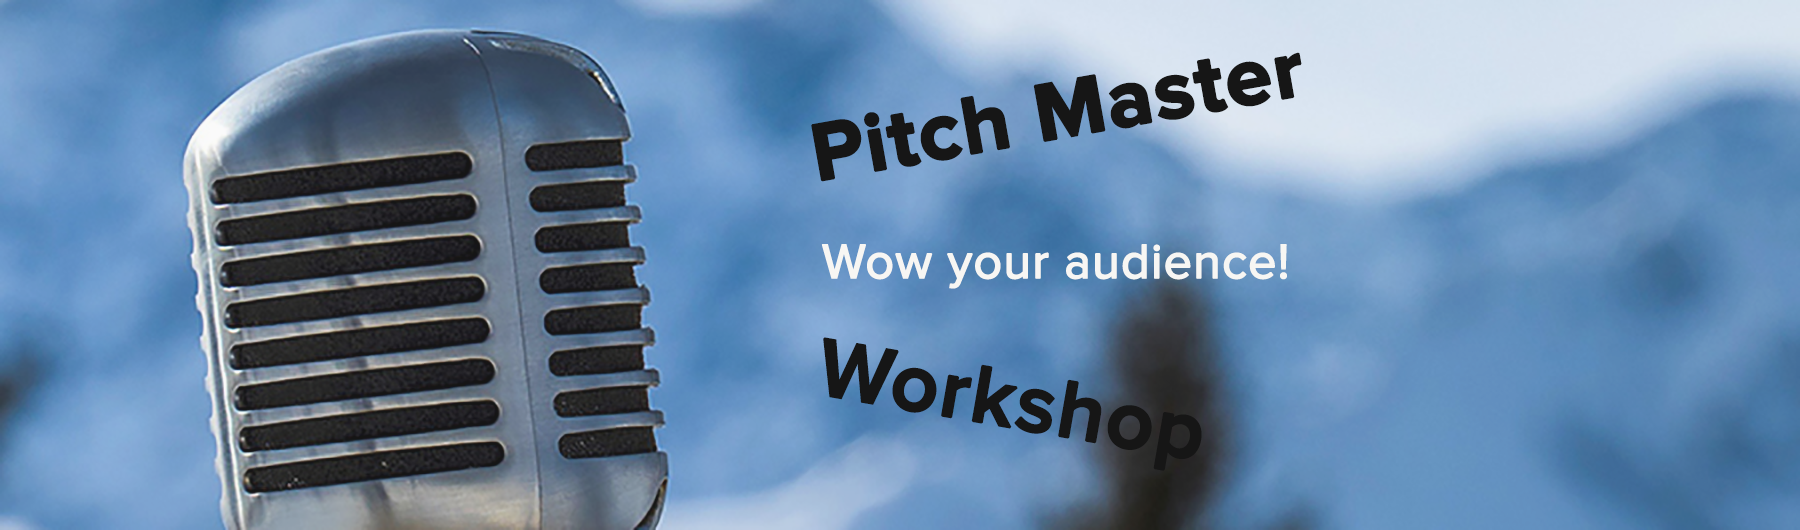 PitchMaster 2017